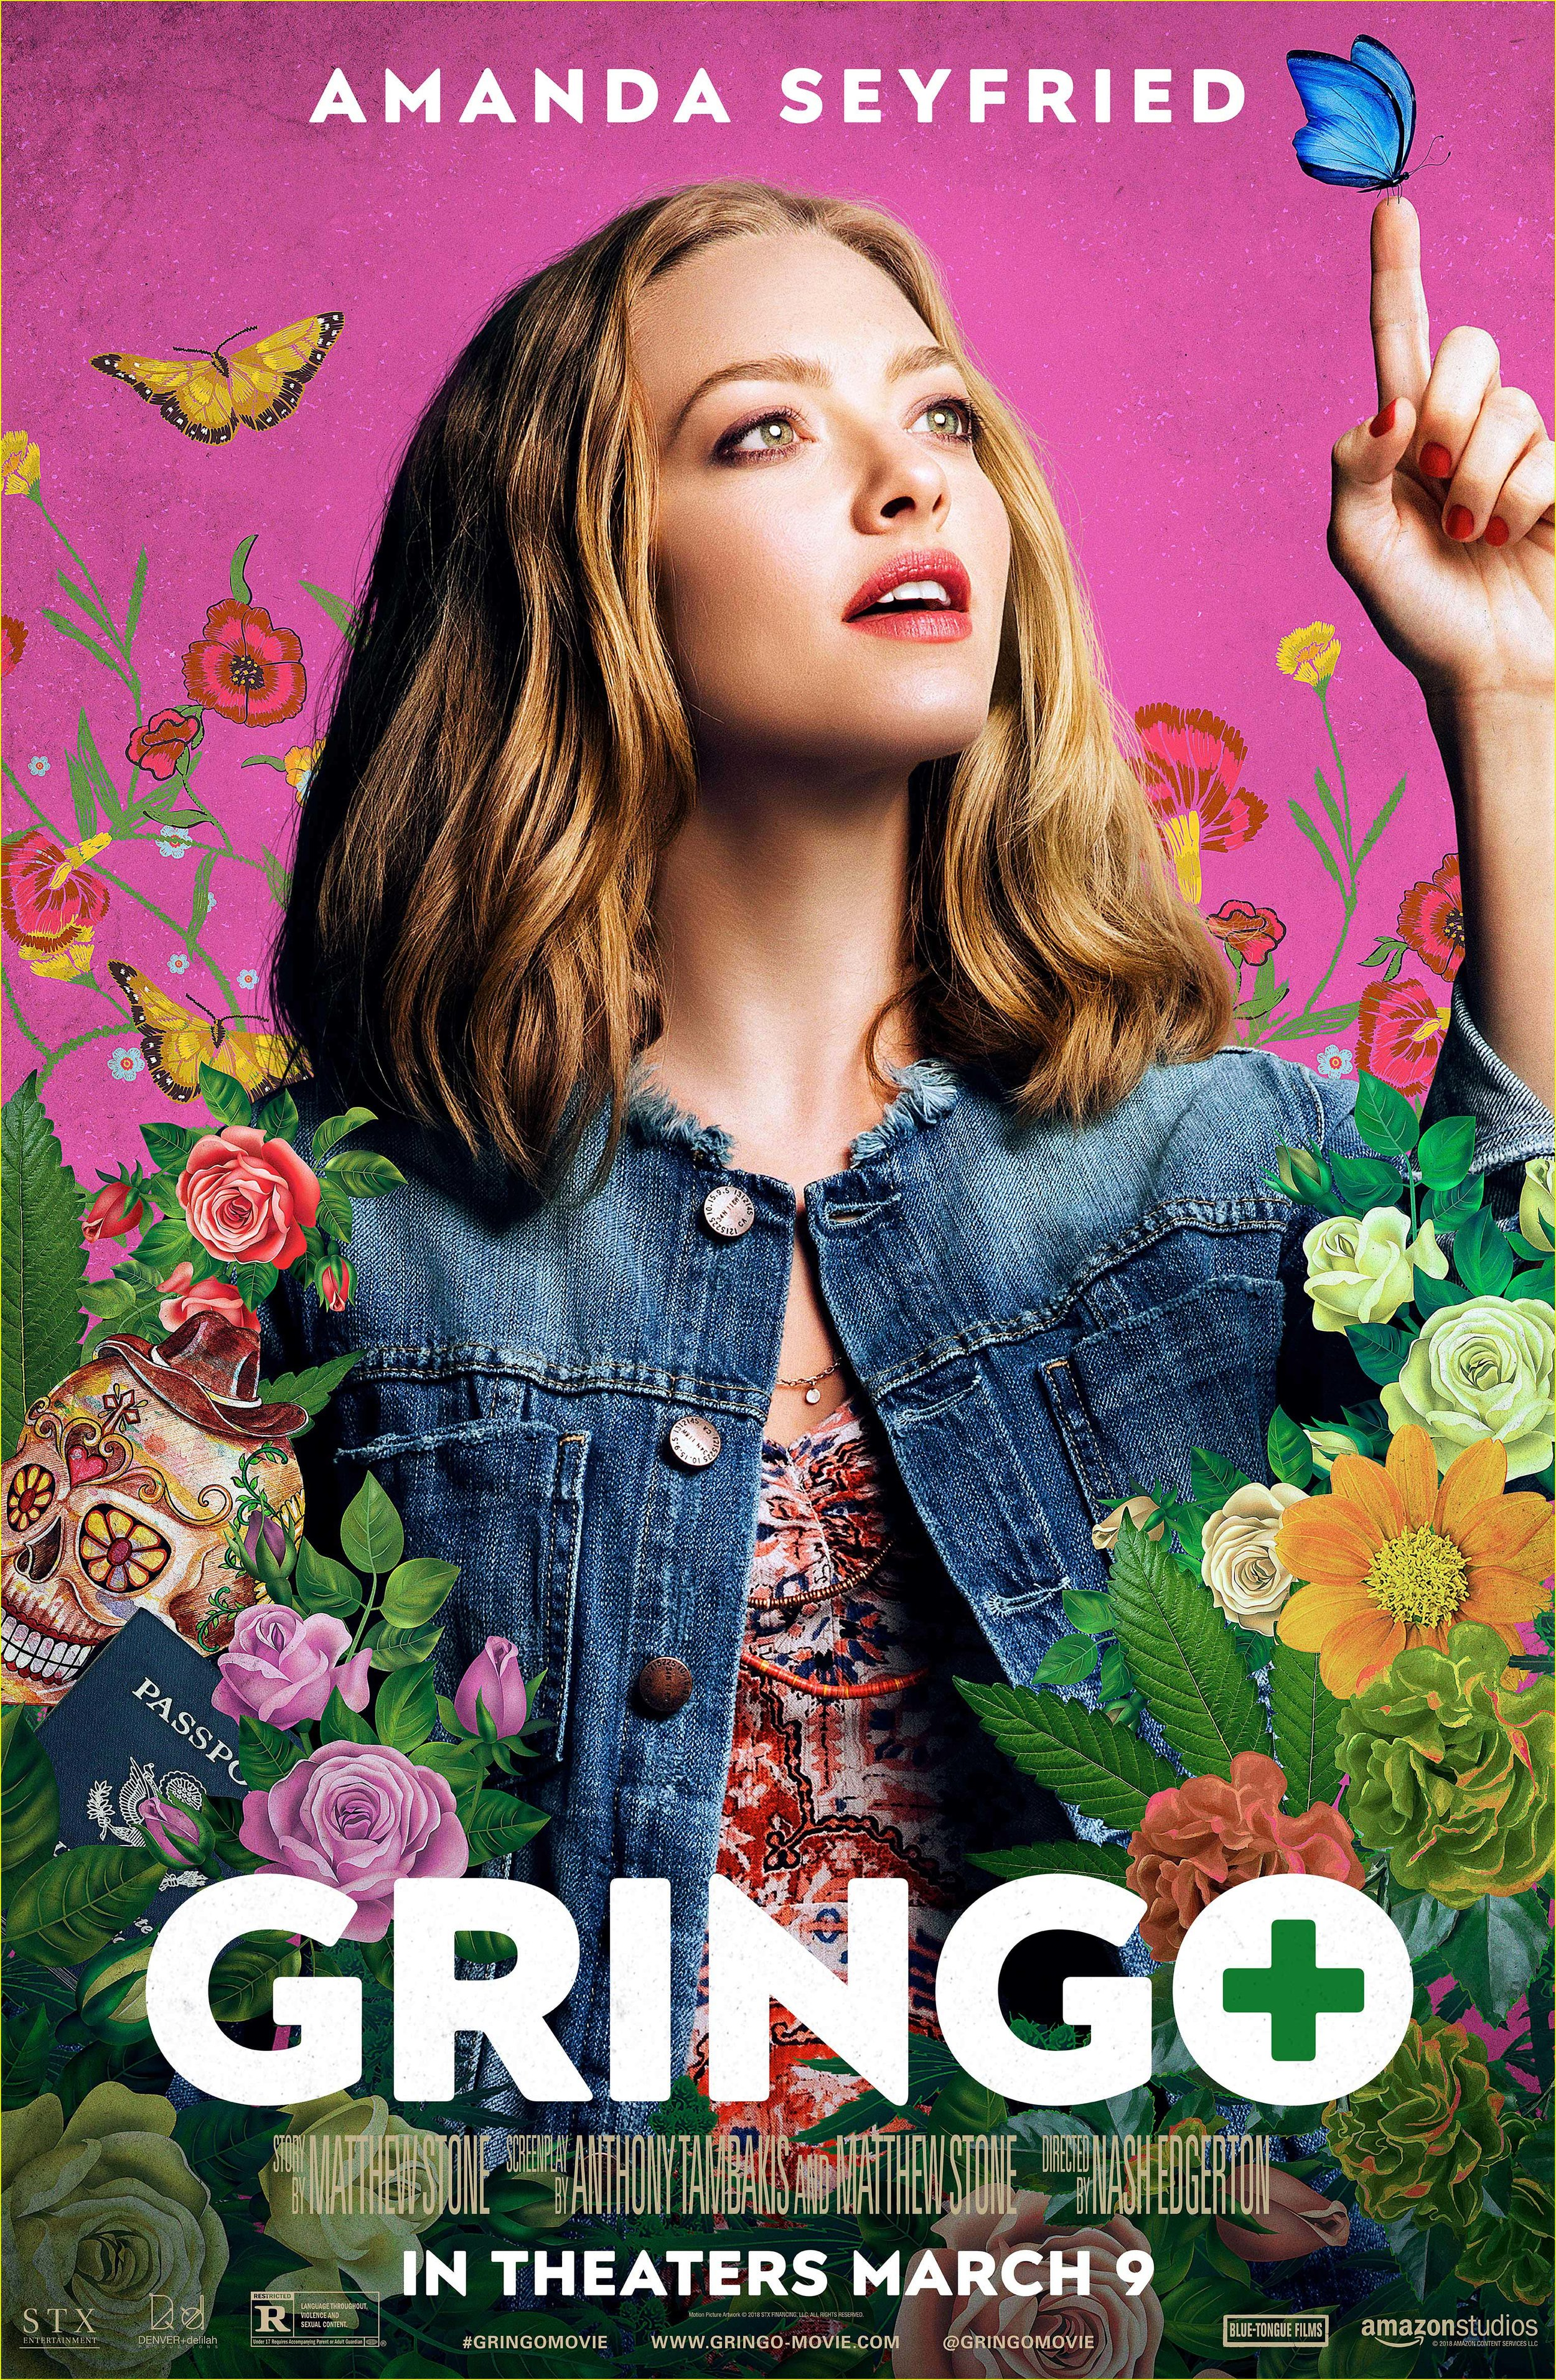 amanda-seyfried-star-in-gringo-posters-05.jpg